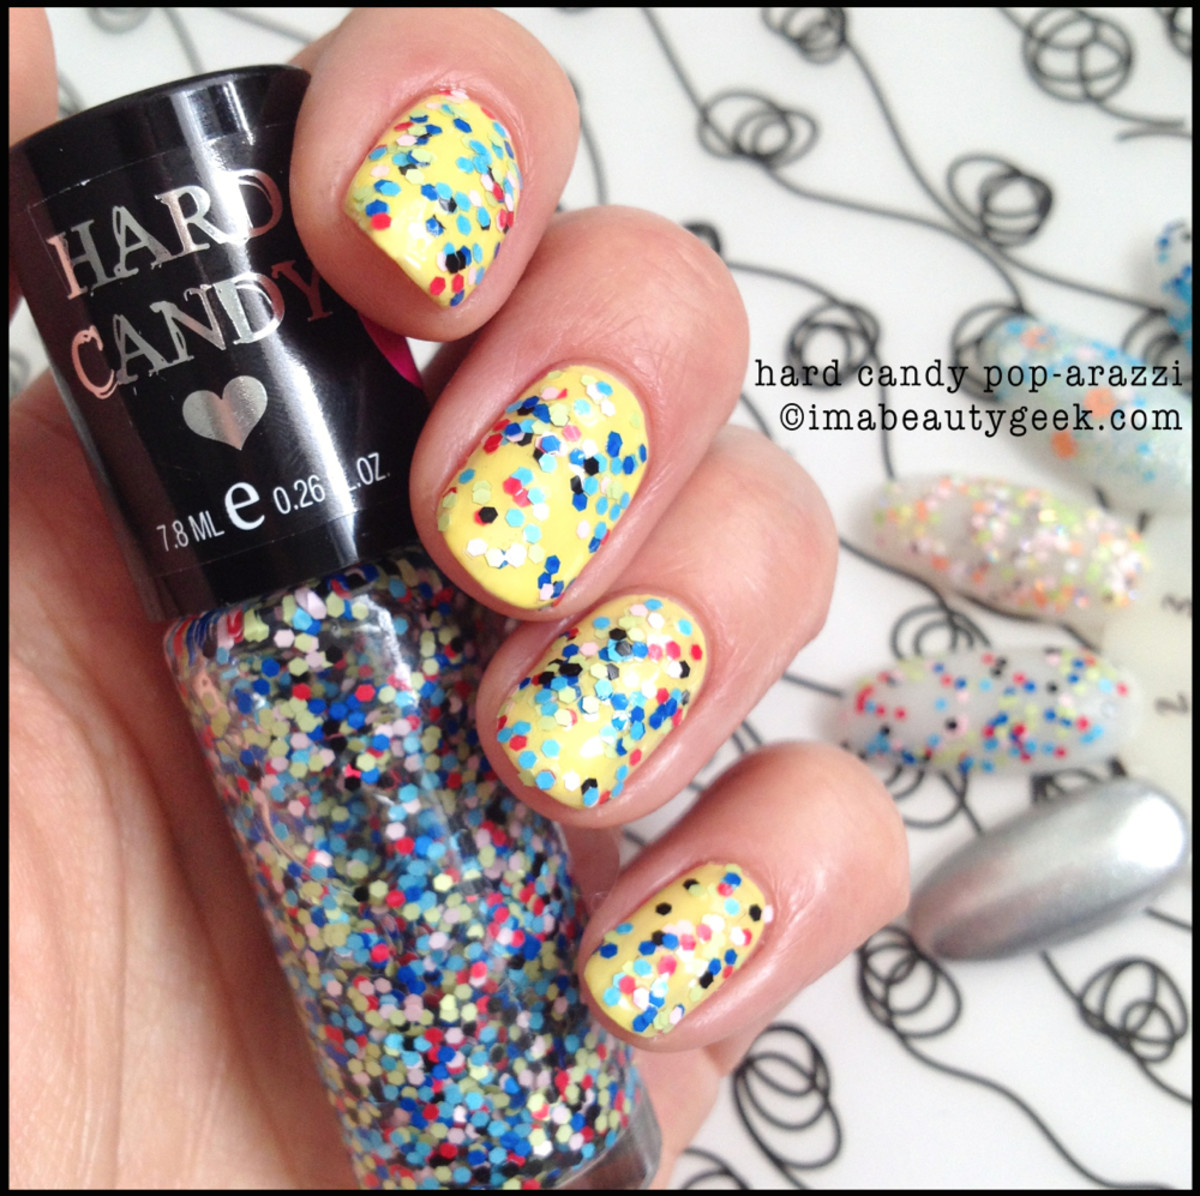 Hard Candy Pop-Arazzi_Hard Candy Polish Spring 2014